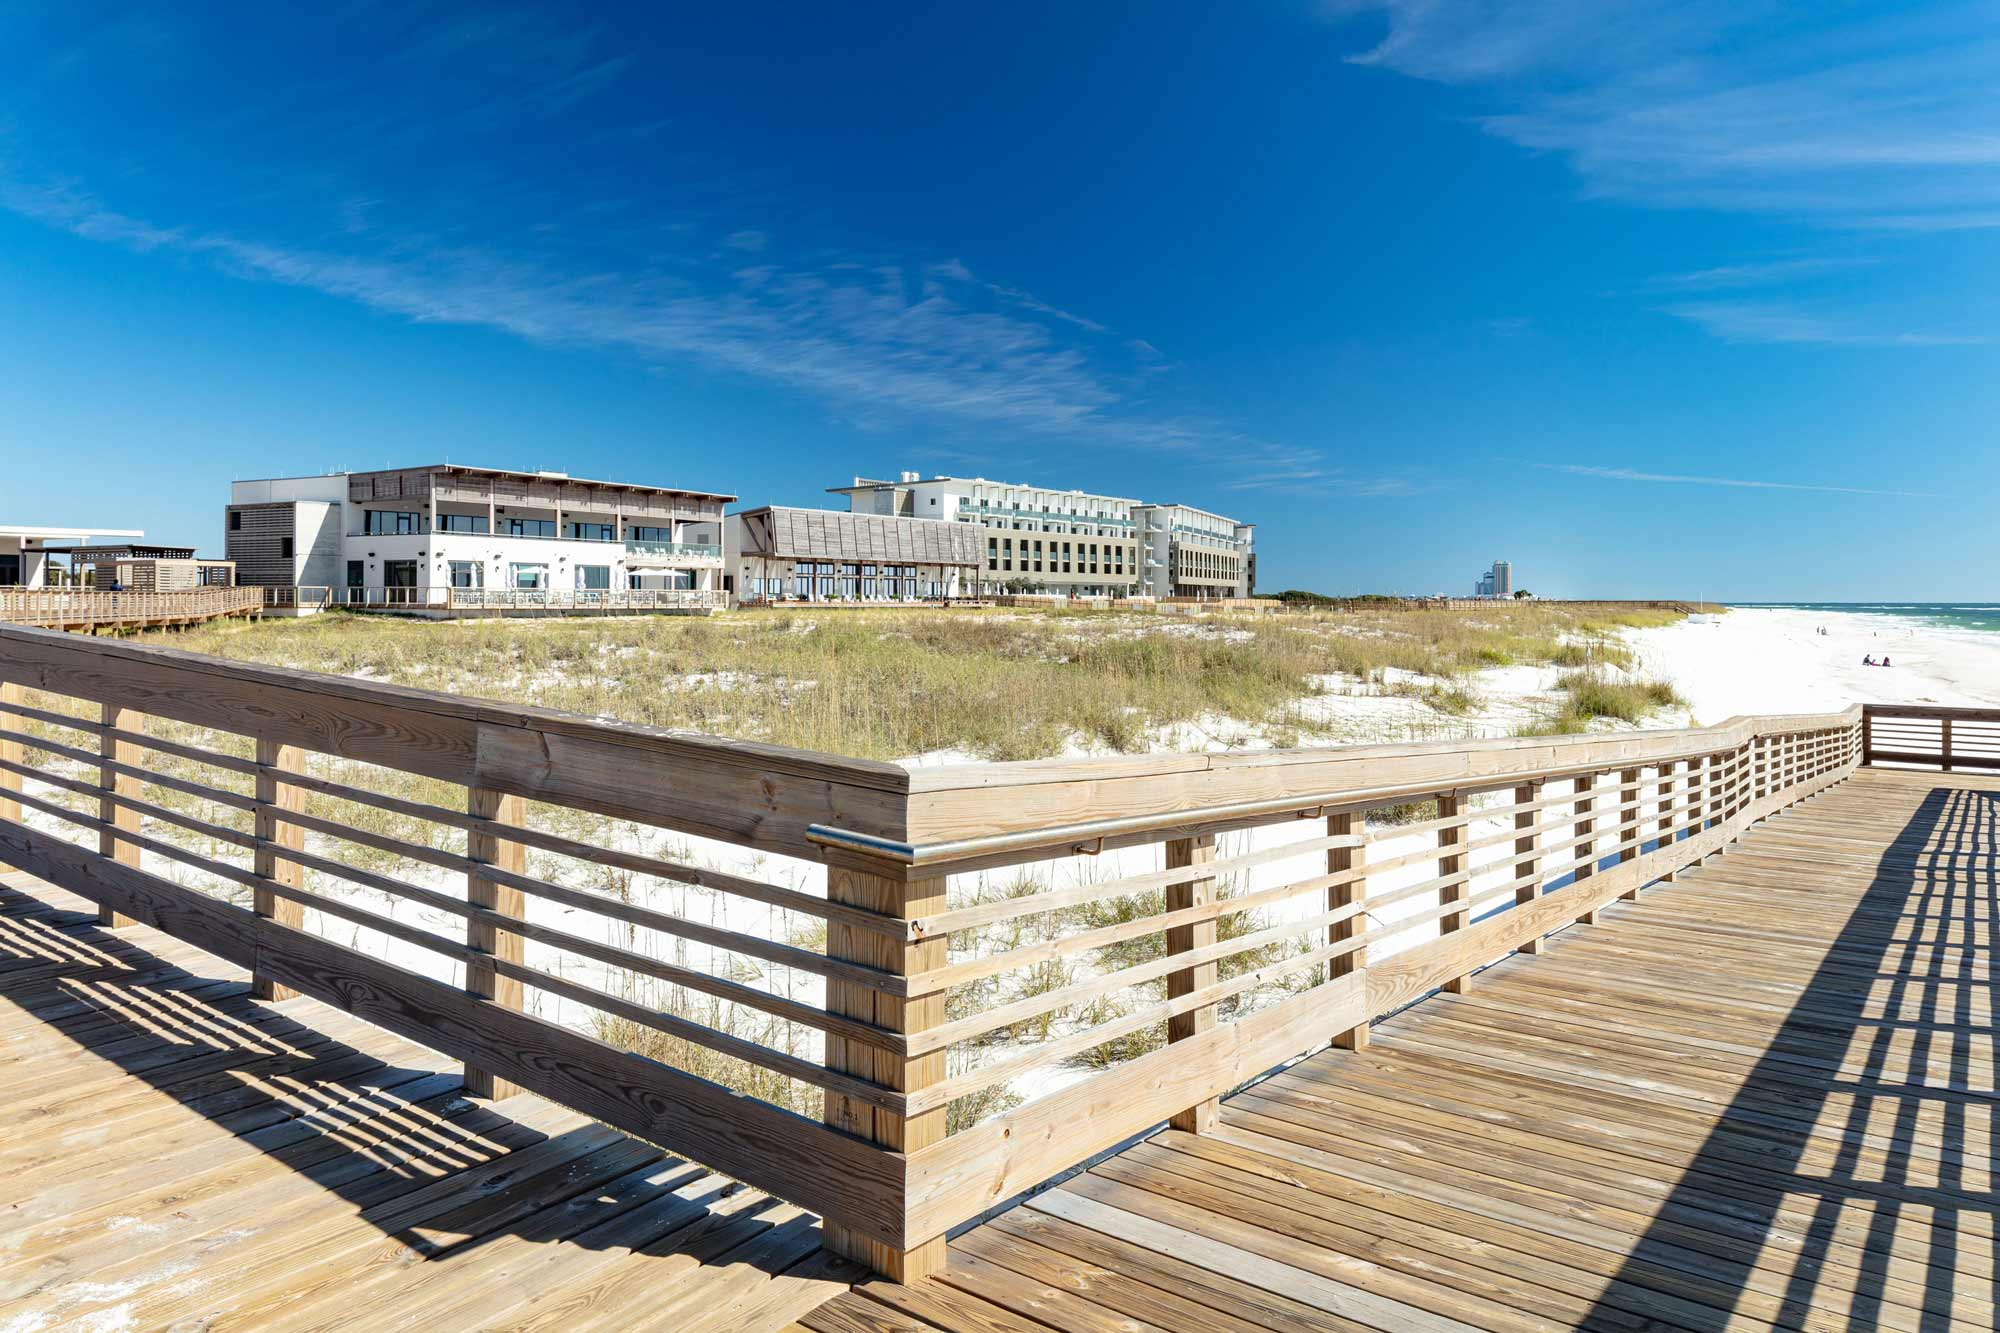 Gulf State Park Awards, Certifications, and Recognition